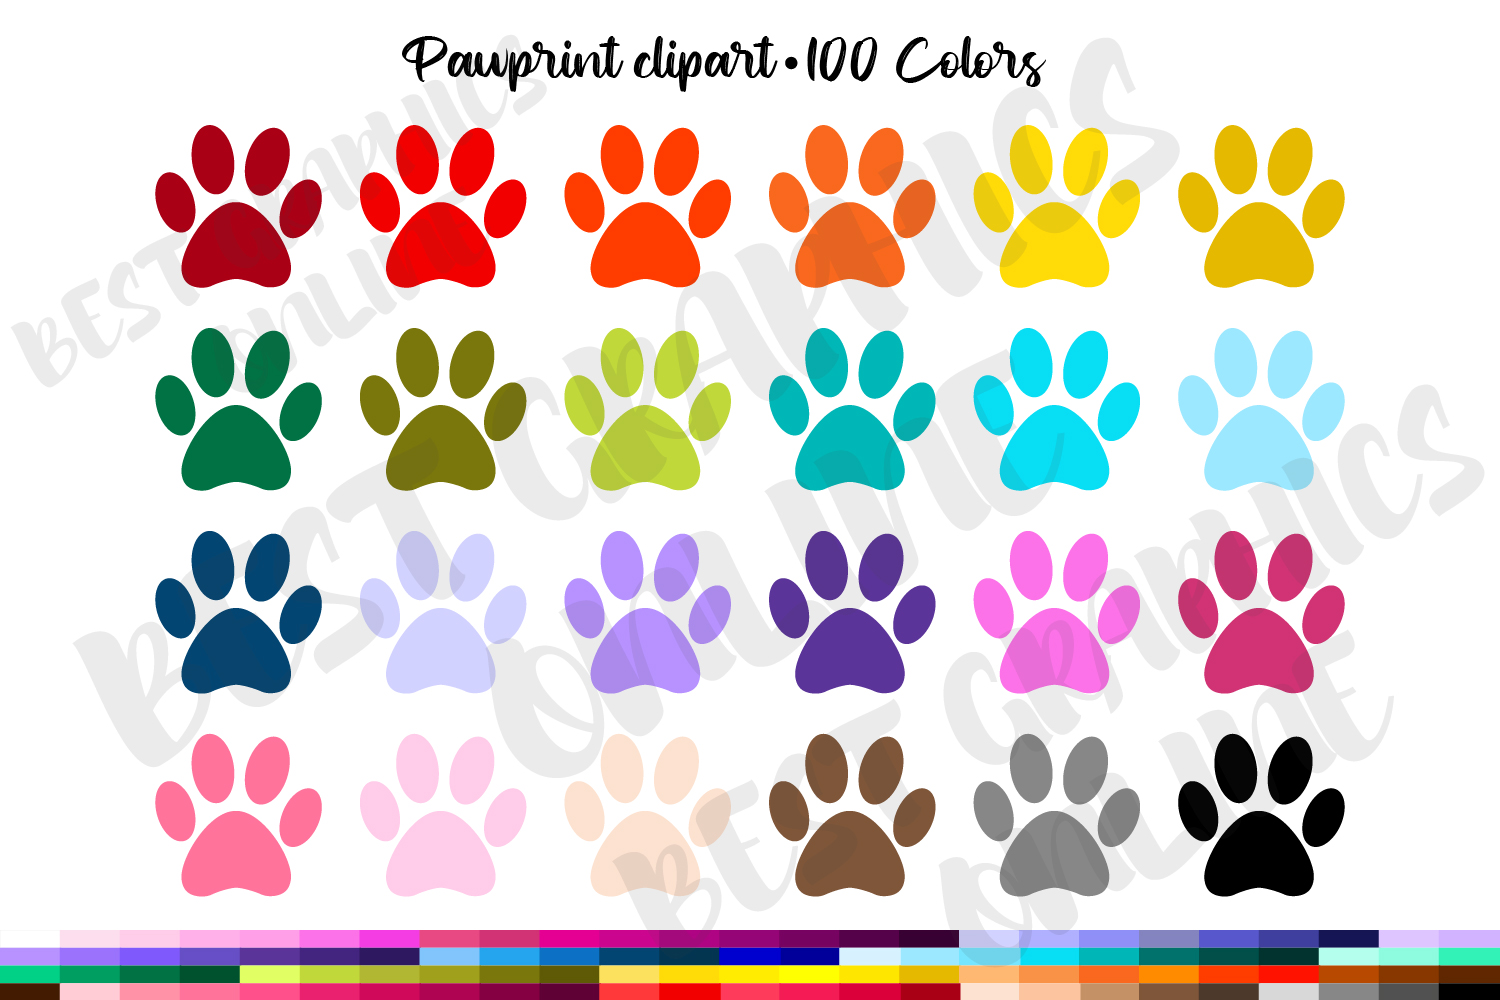 Paw prints Illustrations and Clipart. 21,881 Paw prints royalty free  illustrations, and drawings available to search from thousands of stock  vector EPS clip art graphic designers.